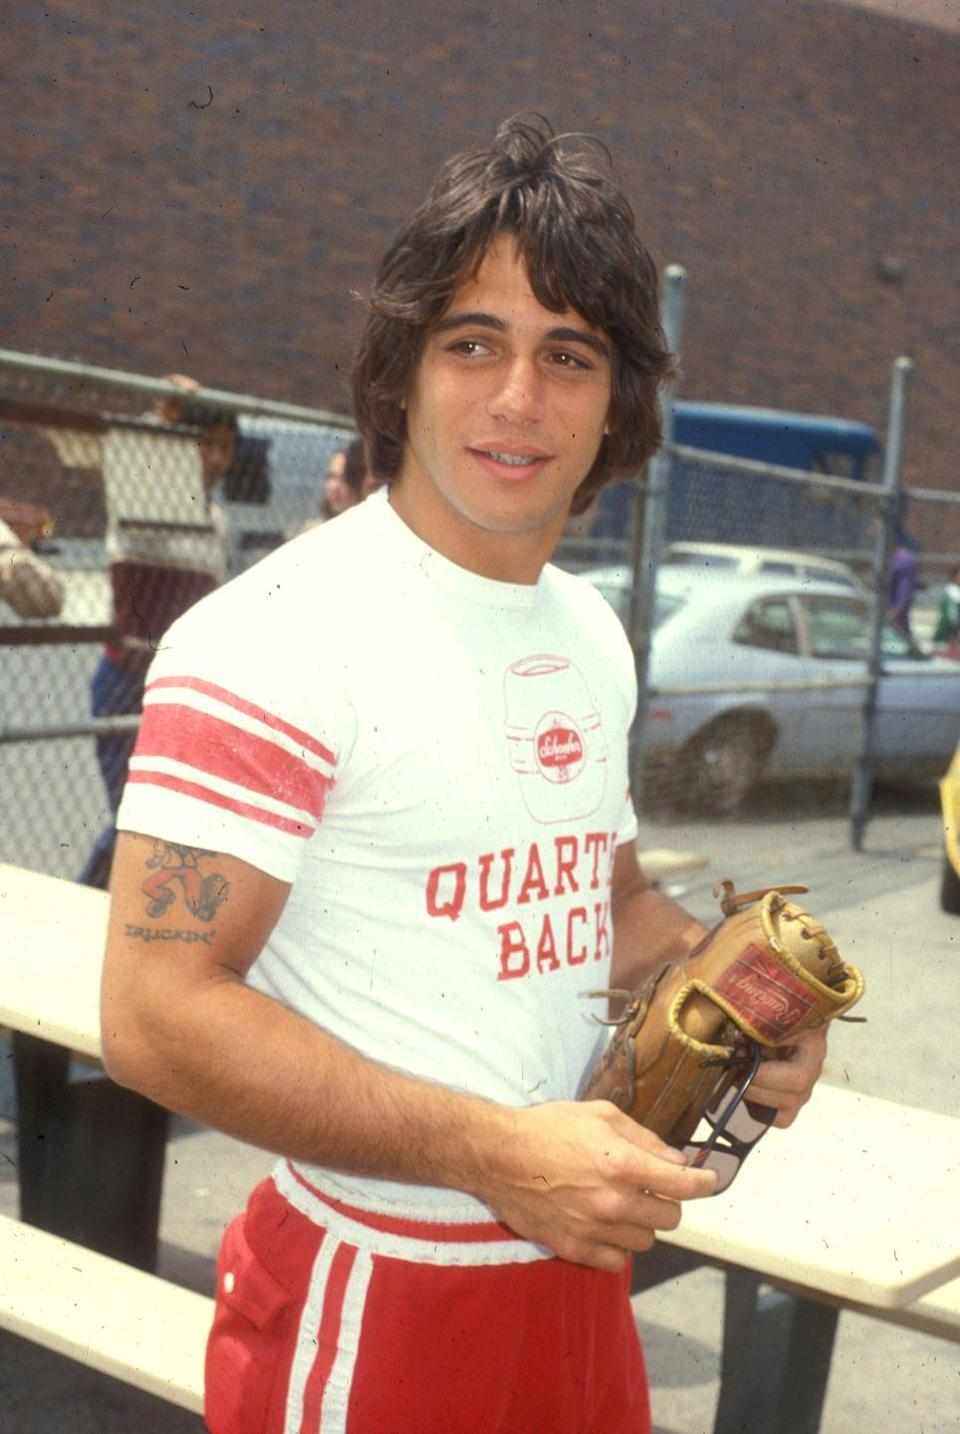 """<p>Though his career started in the '70s with <em>Taxi</em>, Tony Danza's biggest decade by far was the '80s. He continued costarring in <em>Taxi</em> until 1983, appeared in several movies <em>and</em><span class=""""redactor-invisible-space""""> began starring on <em>Who's The Boss?</em><span class=""""redactor-invisible-space"""">, the beloved sitcom which ran from 1984 all the way until 1992.</span></span></p>"""